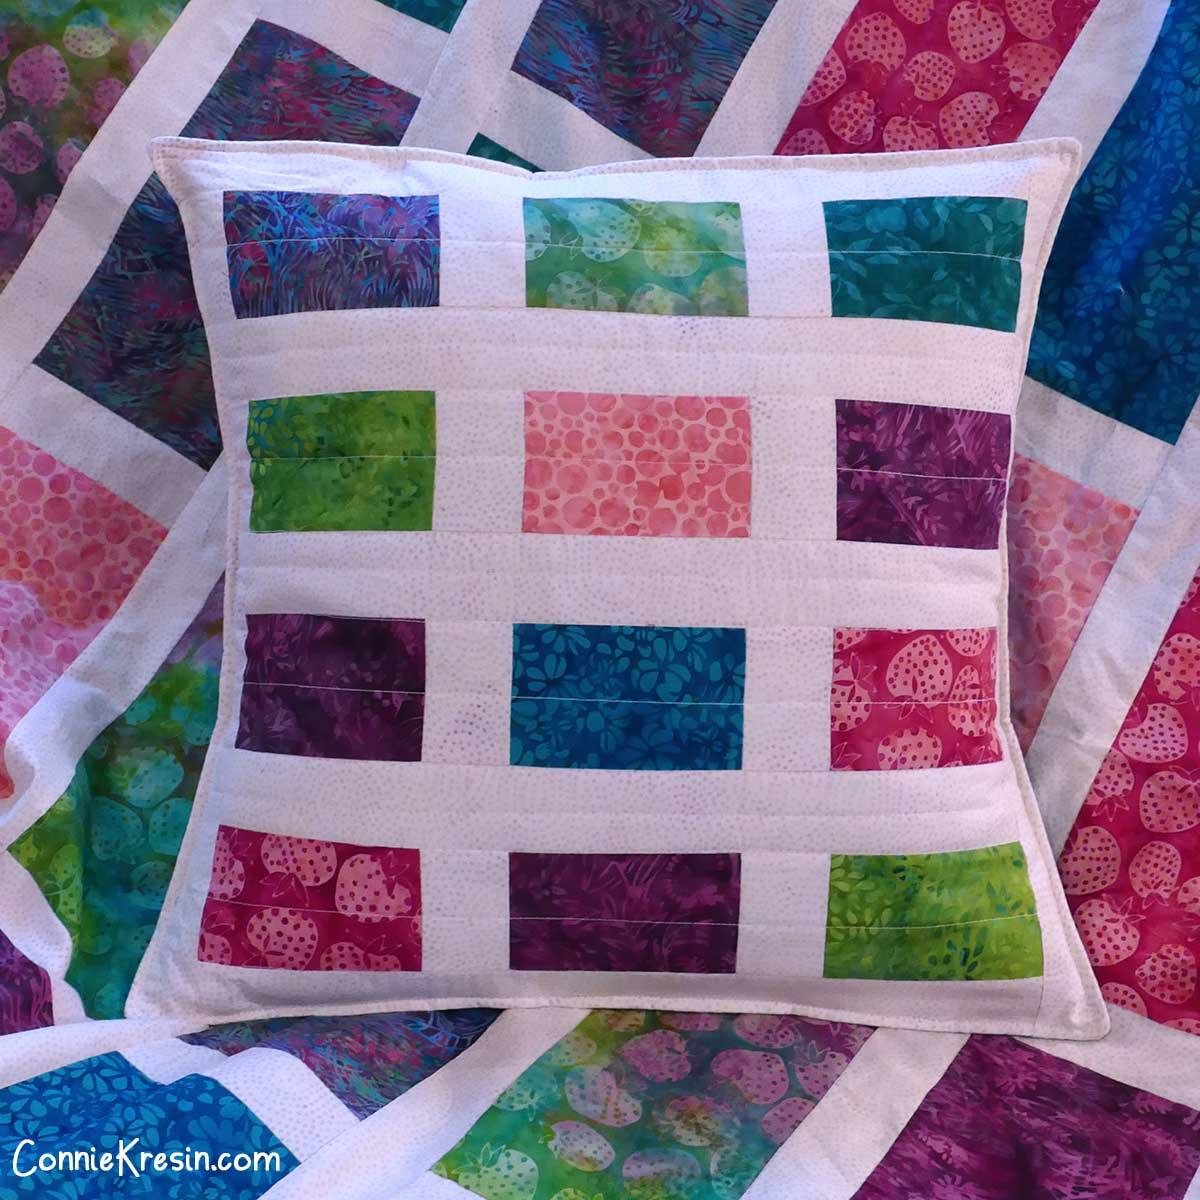 Sparkles quilted pillow made with straight stitching